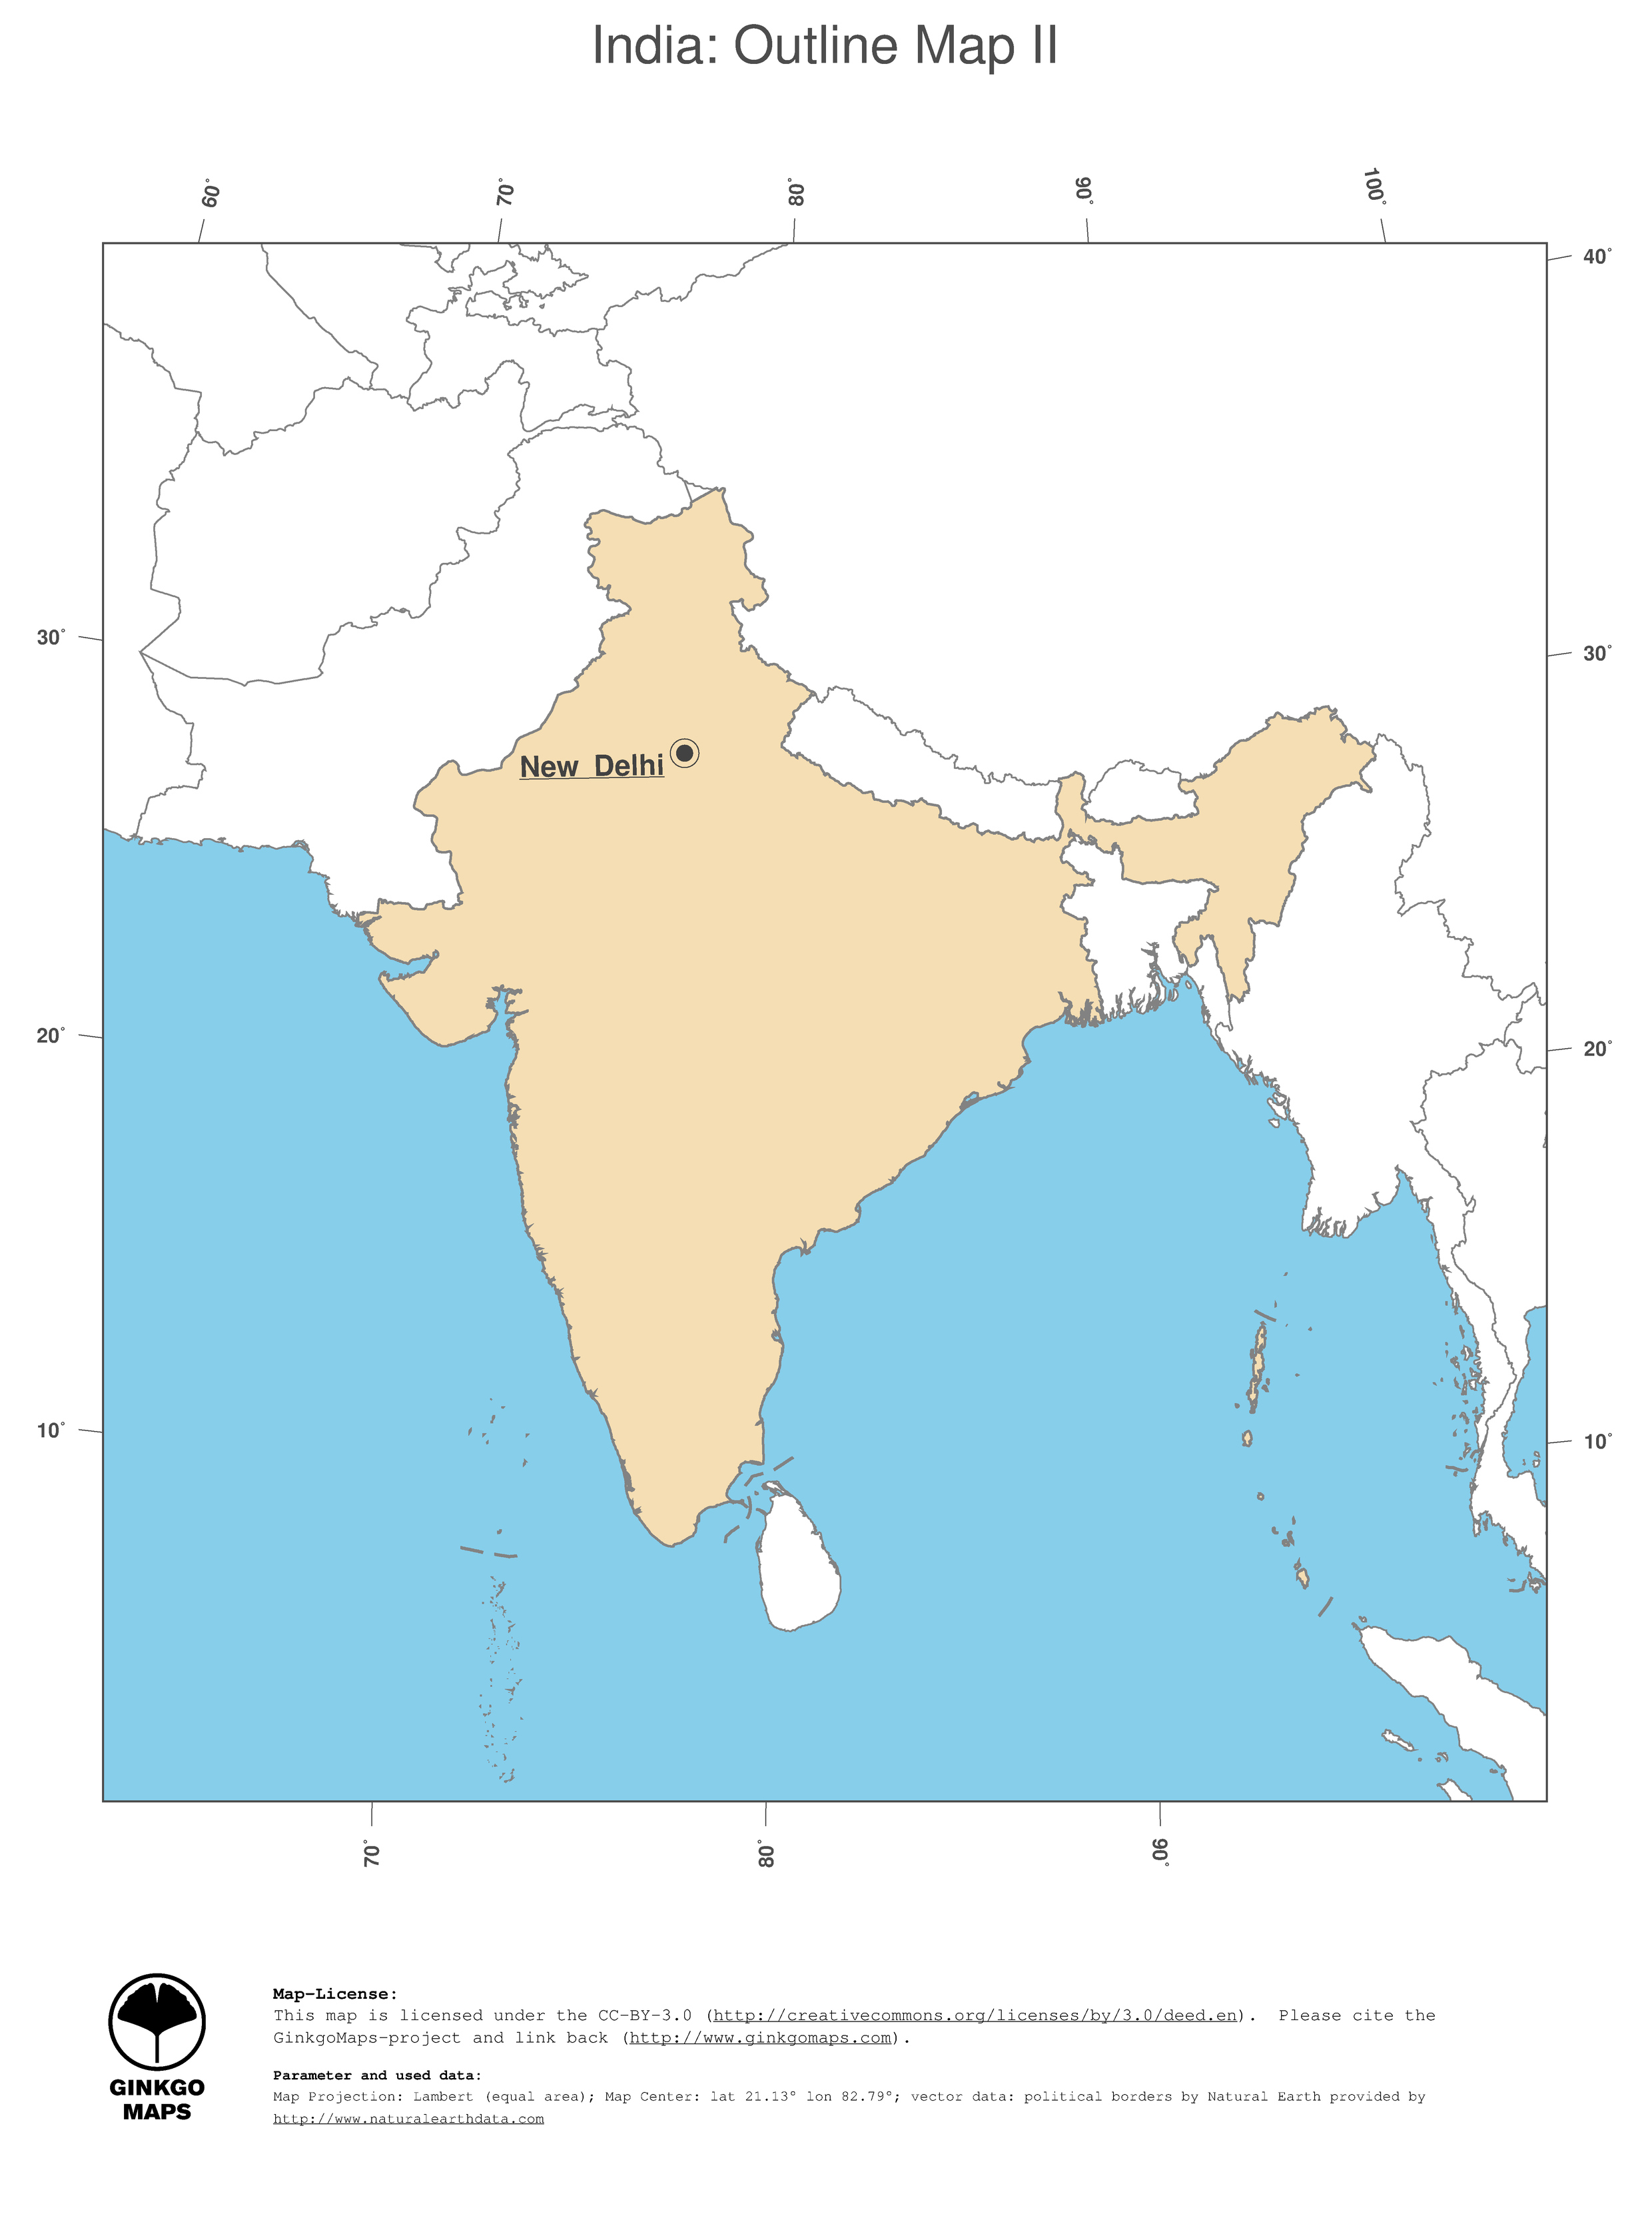 Map india ginkgomaps continent asia region india jpg 3323 x 2480 pxl gumiabroncs Gallery